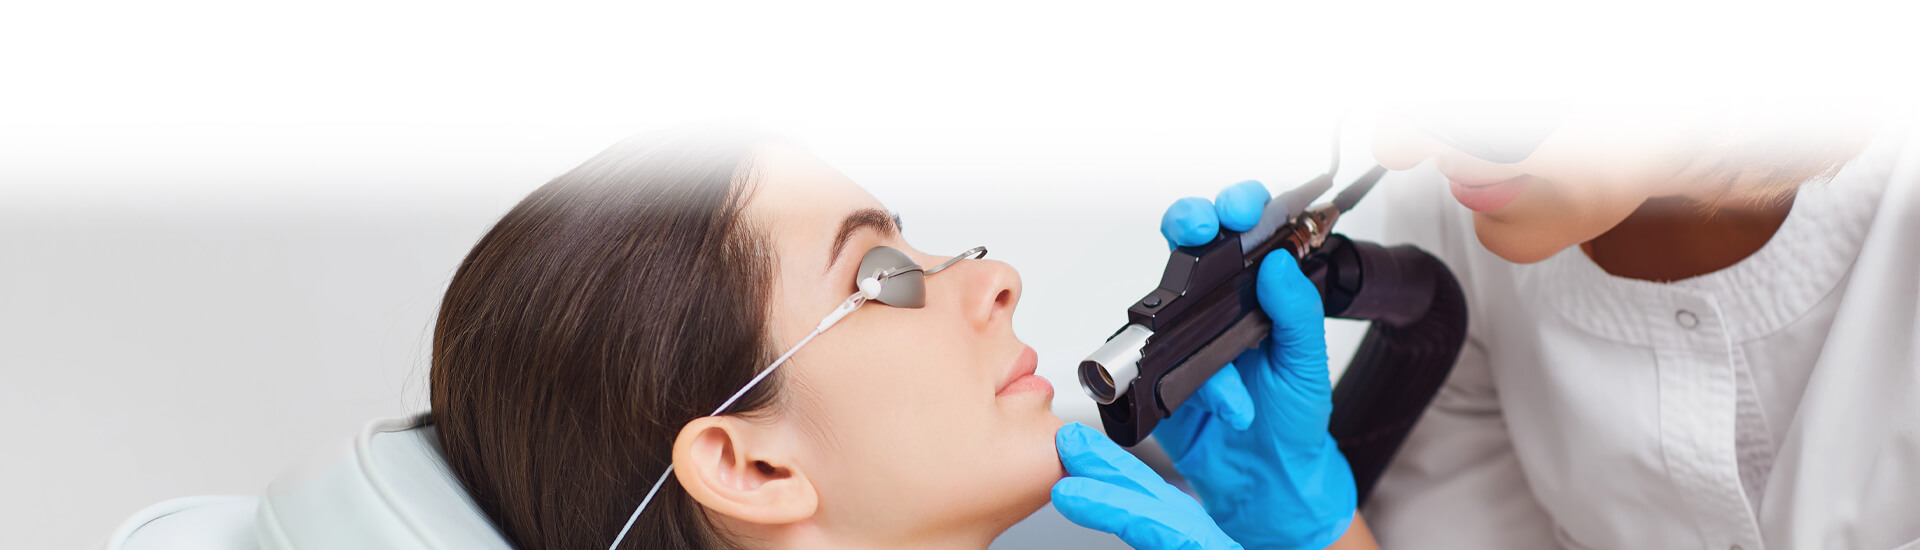 eCO2 fractional laser skin treatment reveals youthful skin in Hamilton, ON